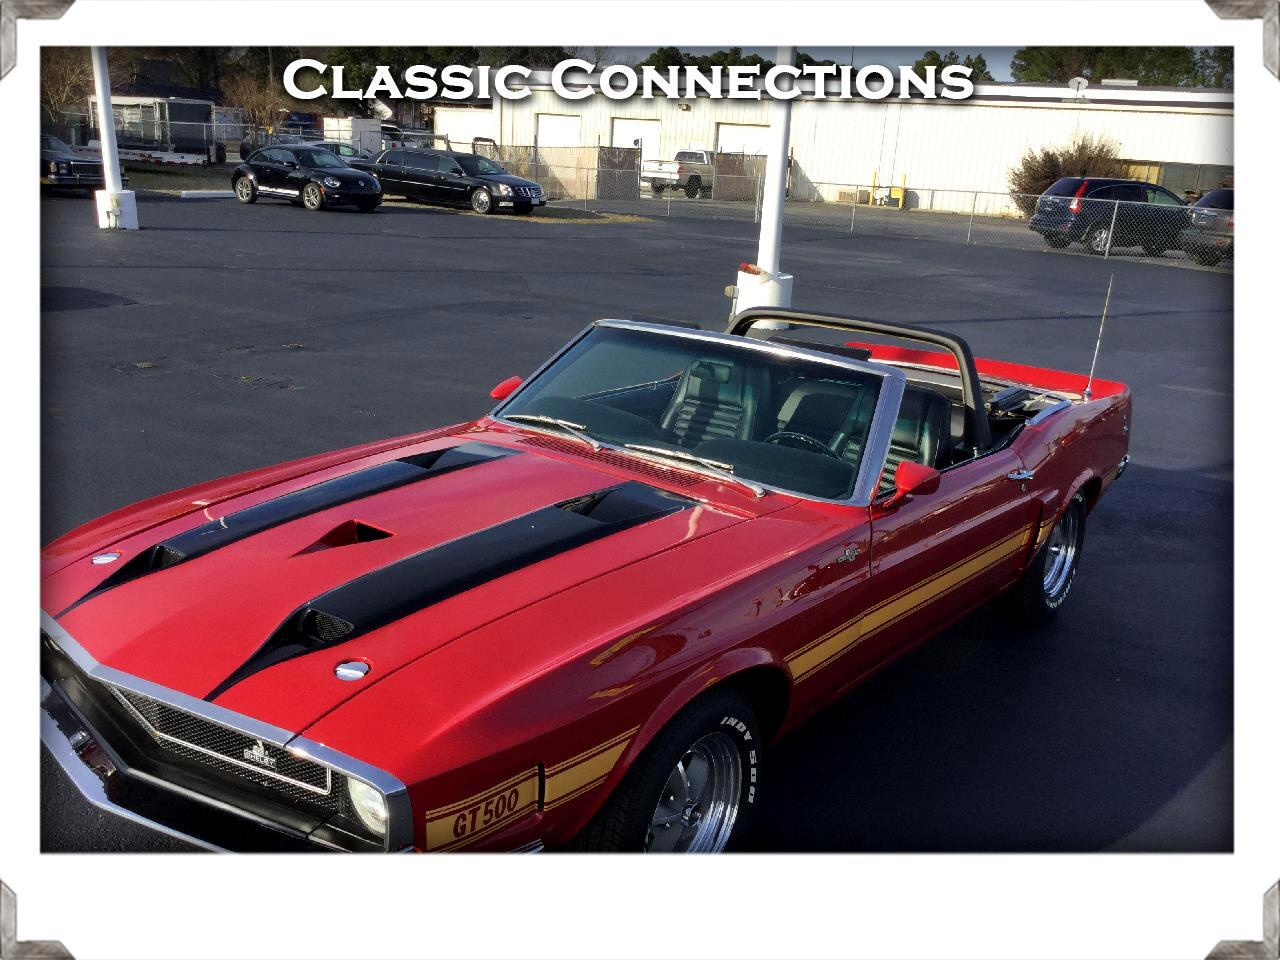 1970 Ford Shelby GT500 deluxe